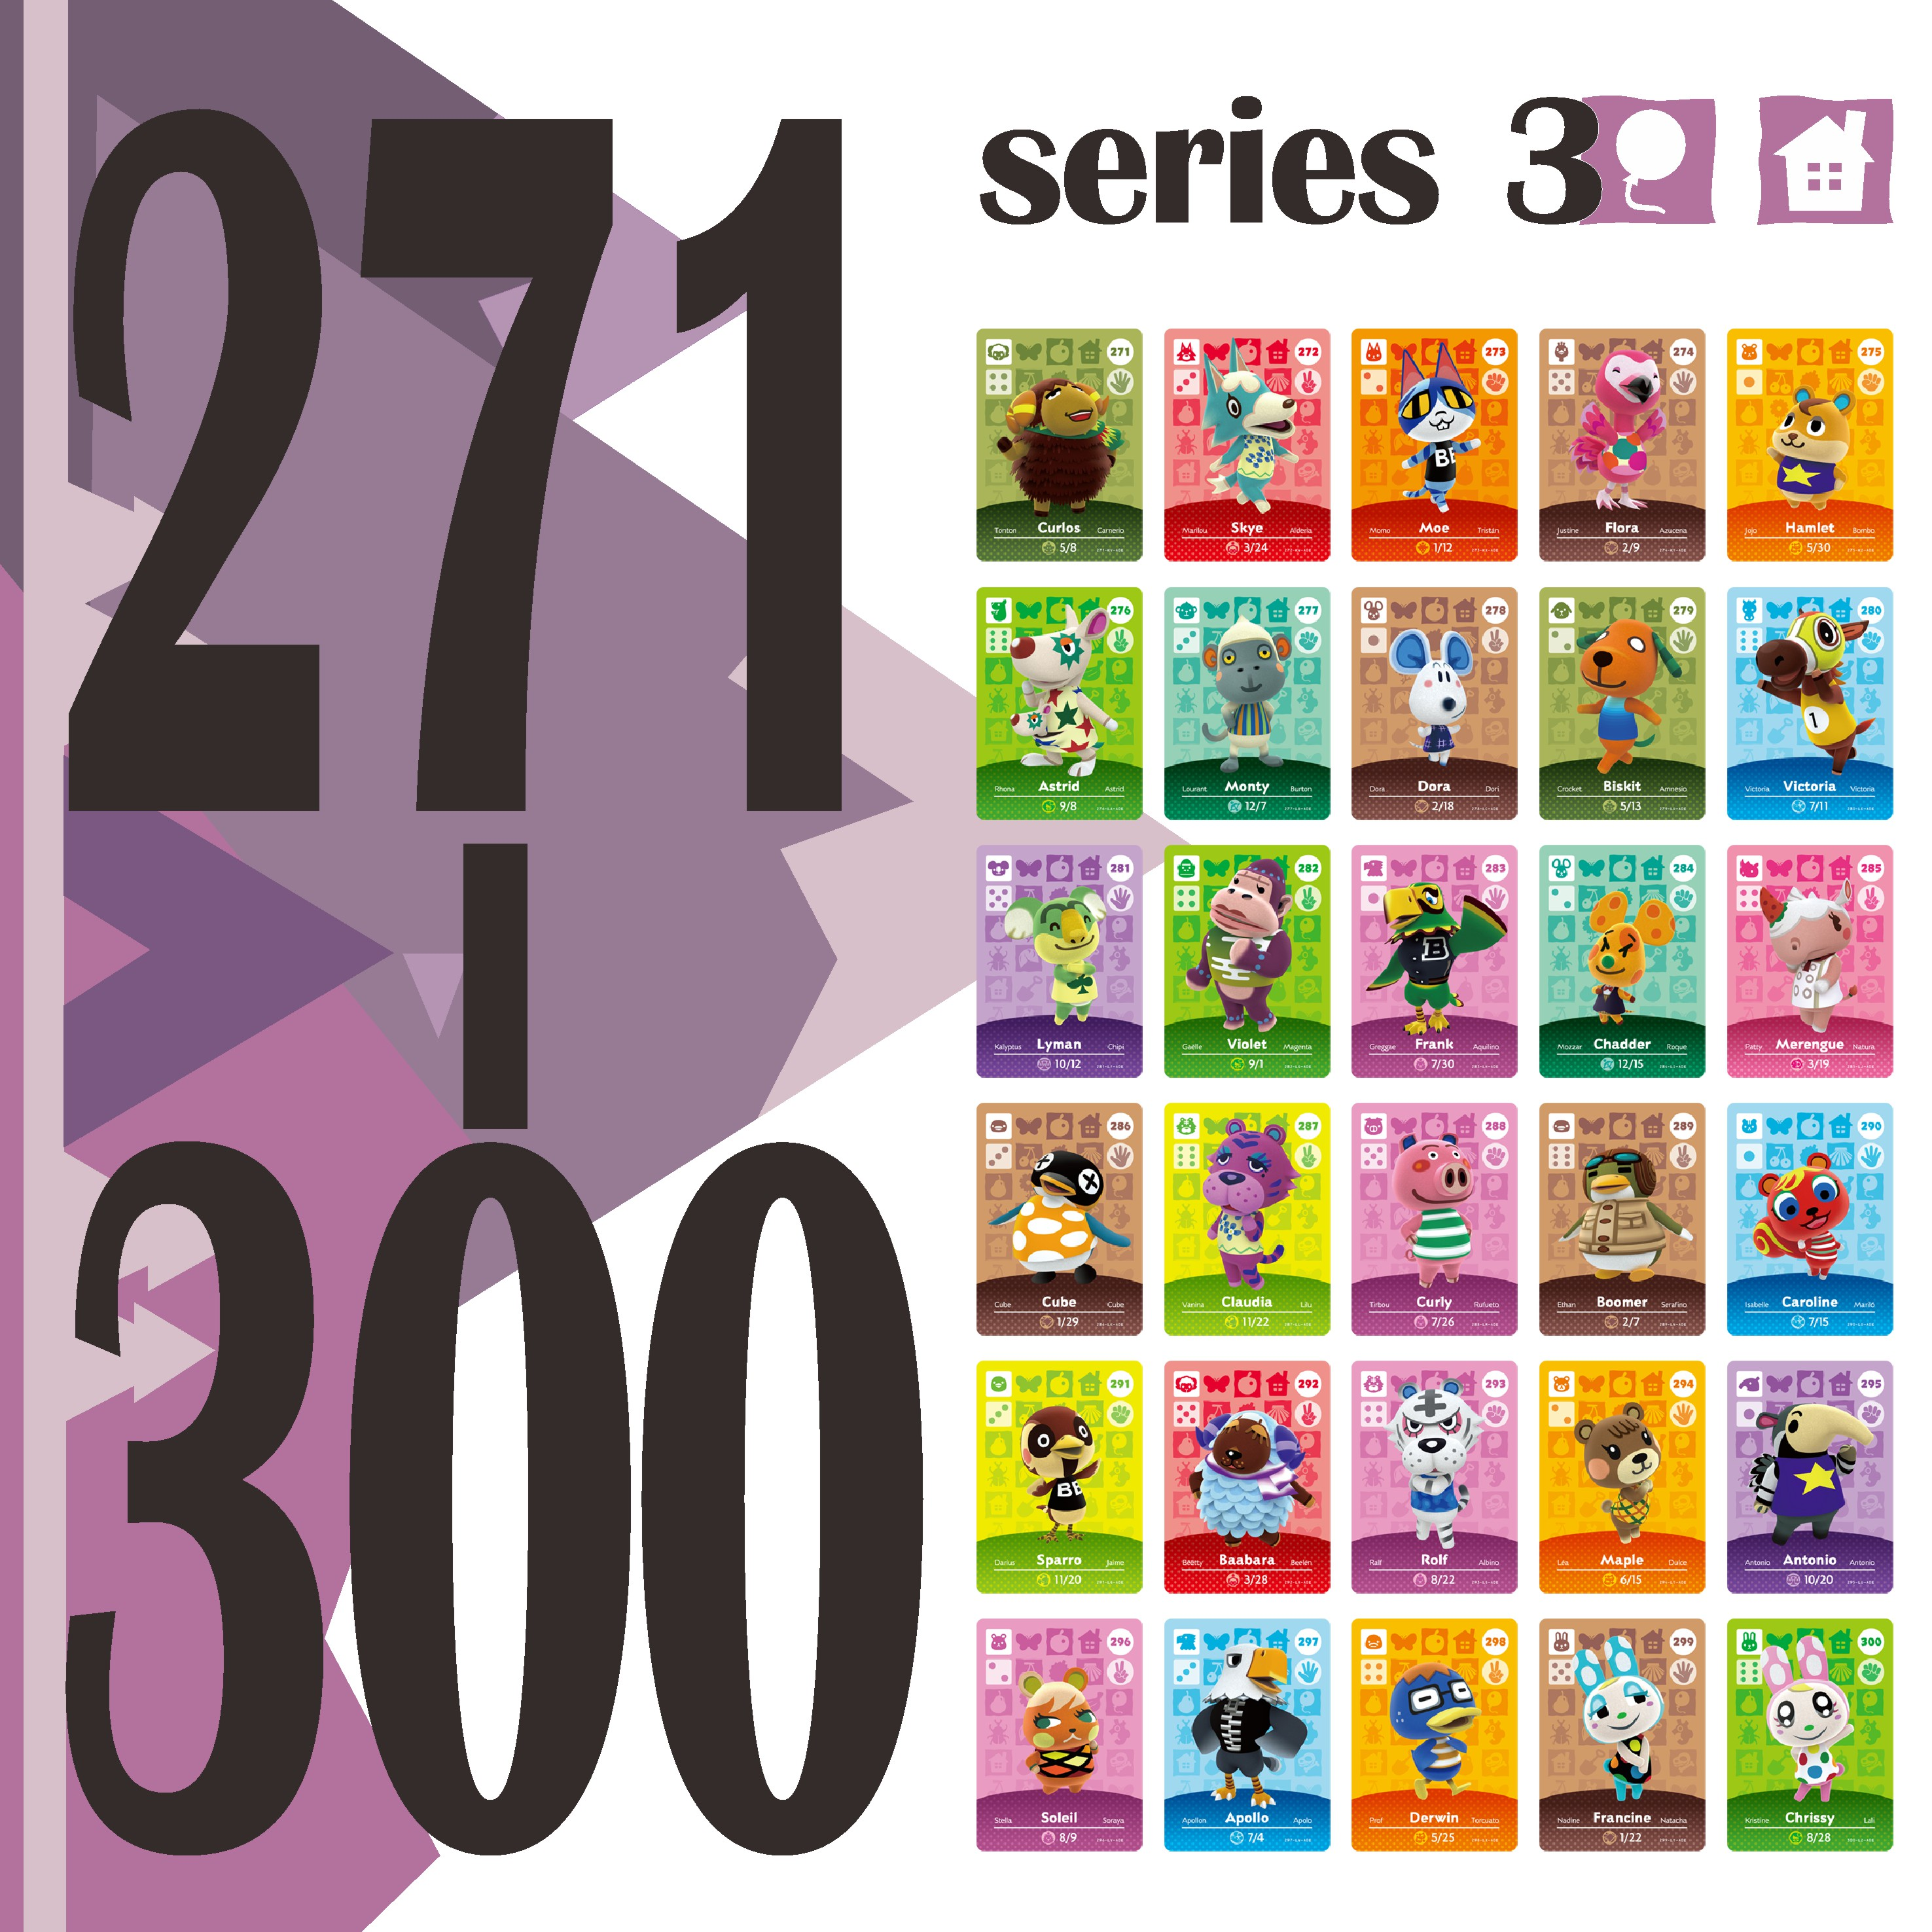 Animal Crossing Stickers Card Amiibo Card Work For NS Games Series 3 Happy Home Designer Guide Switch Rosie Rv (271 To 300)